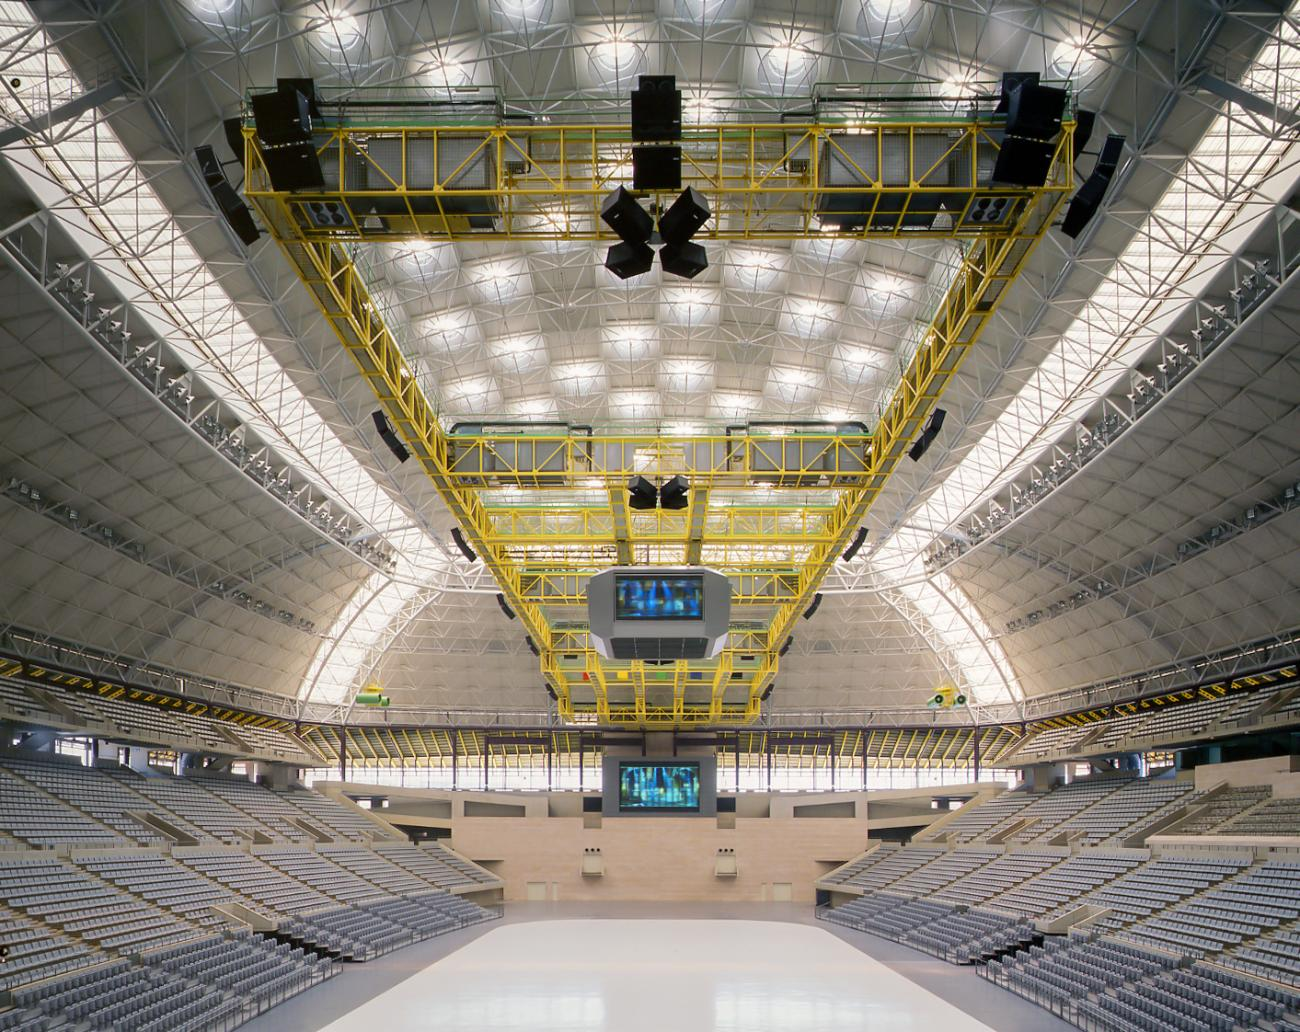 Palau Sant Jordi, photo courtesy of Hisao Suzuki